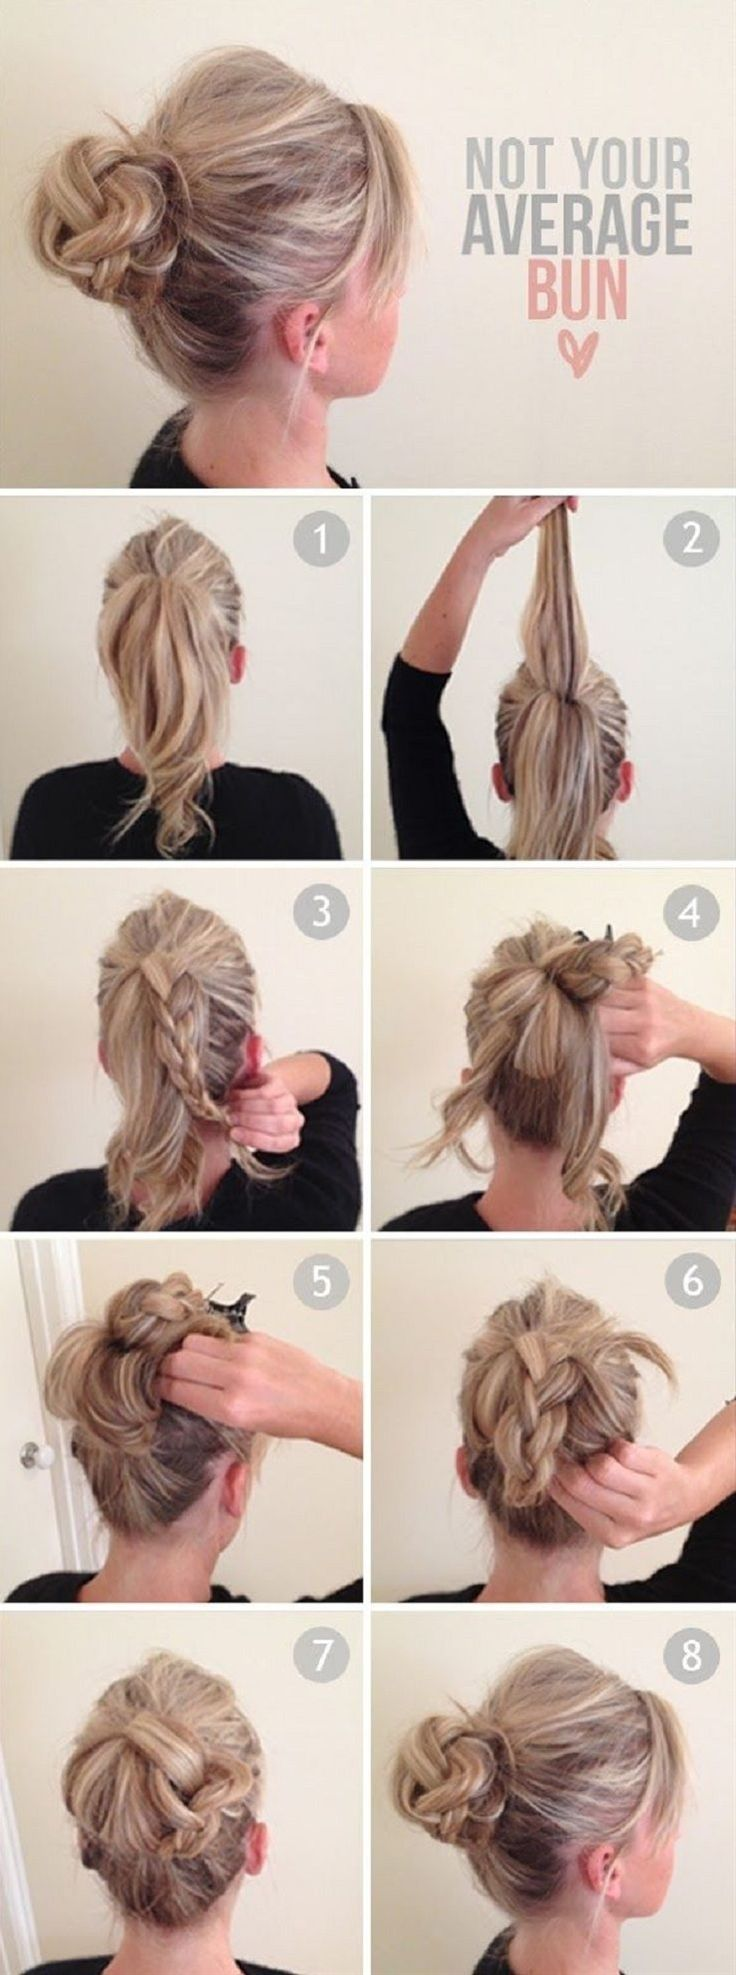 TOP 10 Hairstyle tutorials for this fall...